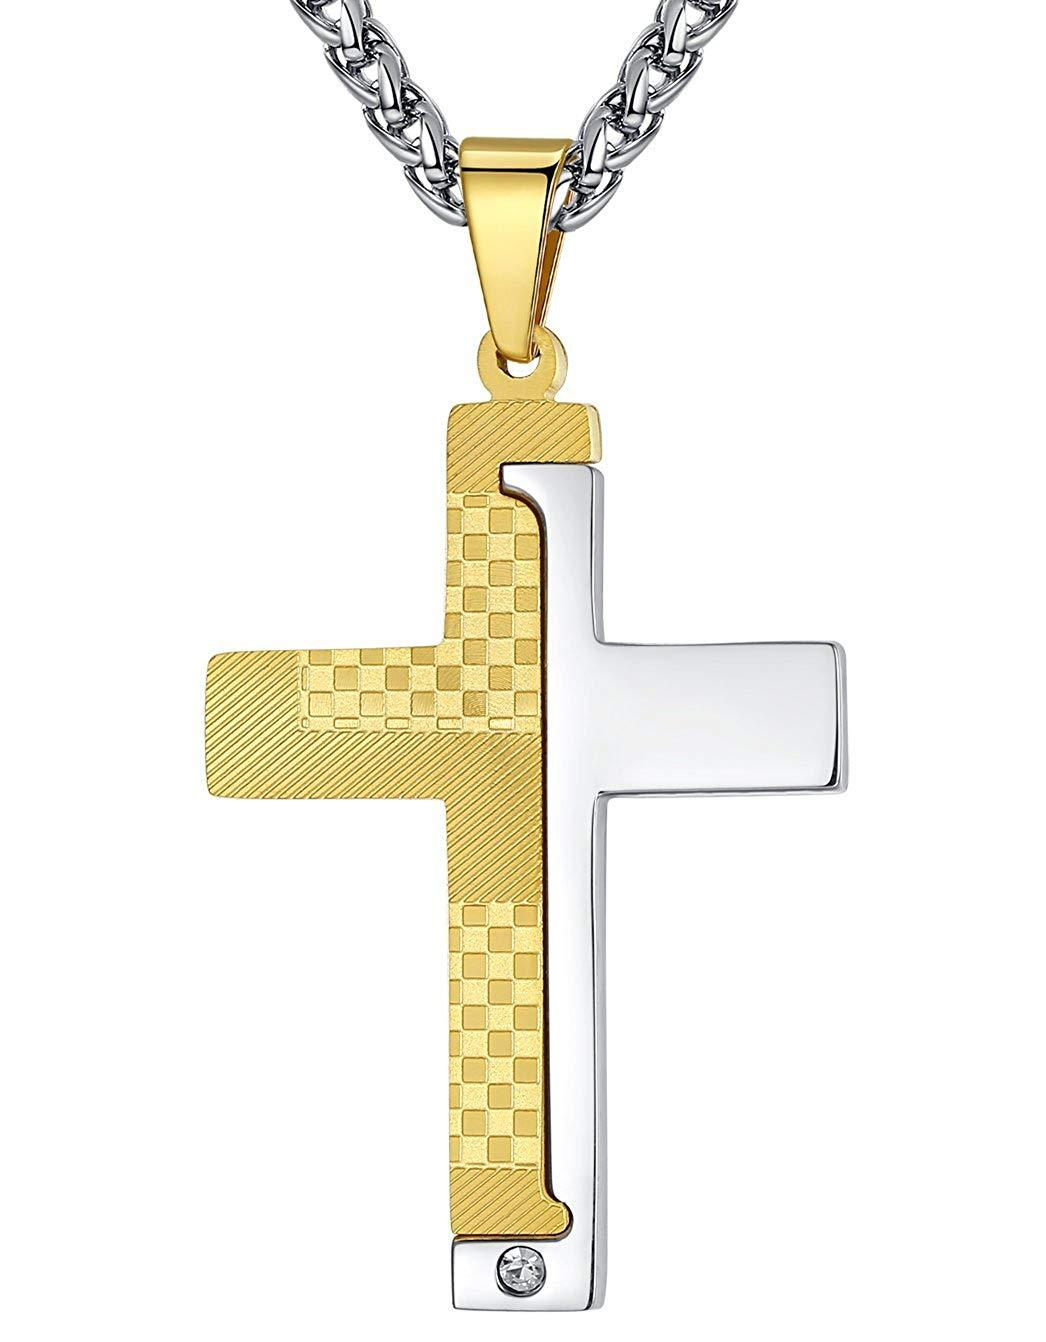 Aoiy Men's Stainless Steel 2-tone Cross Pendant Necklace 24 Wheat Link Chain @ Sons of Odin™ -